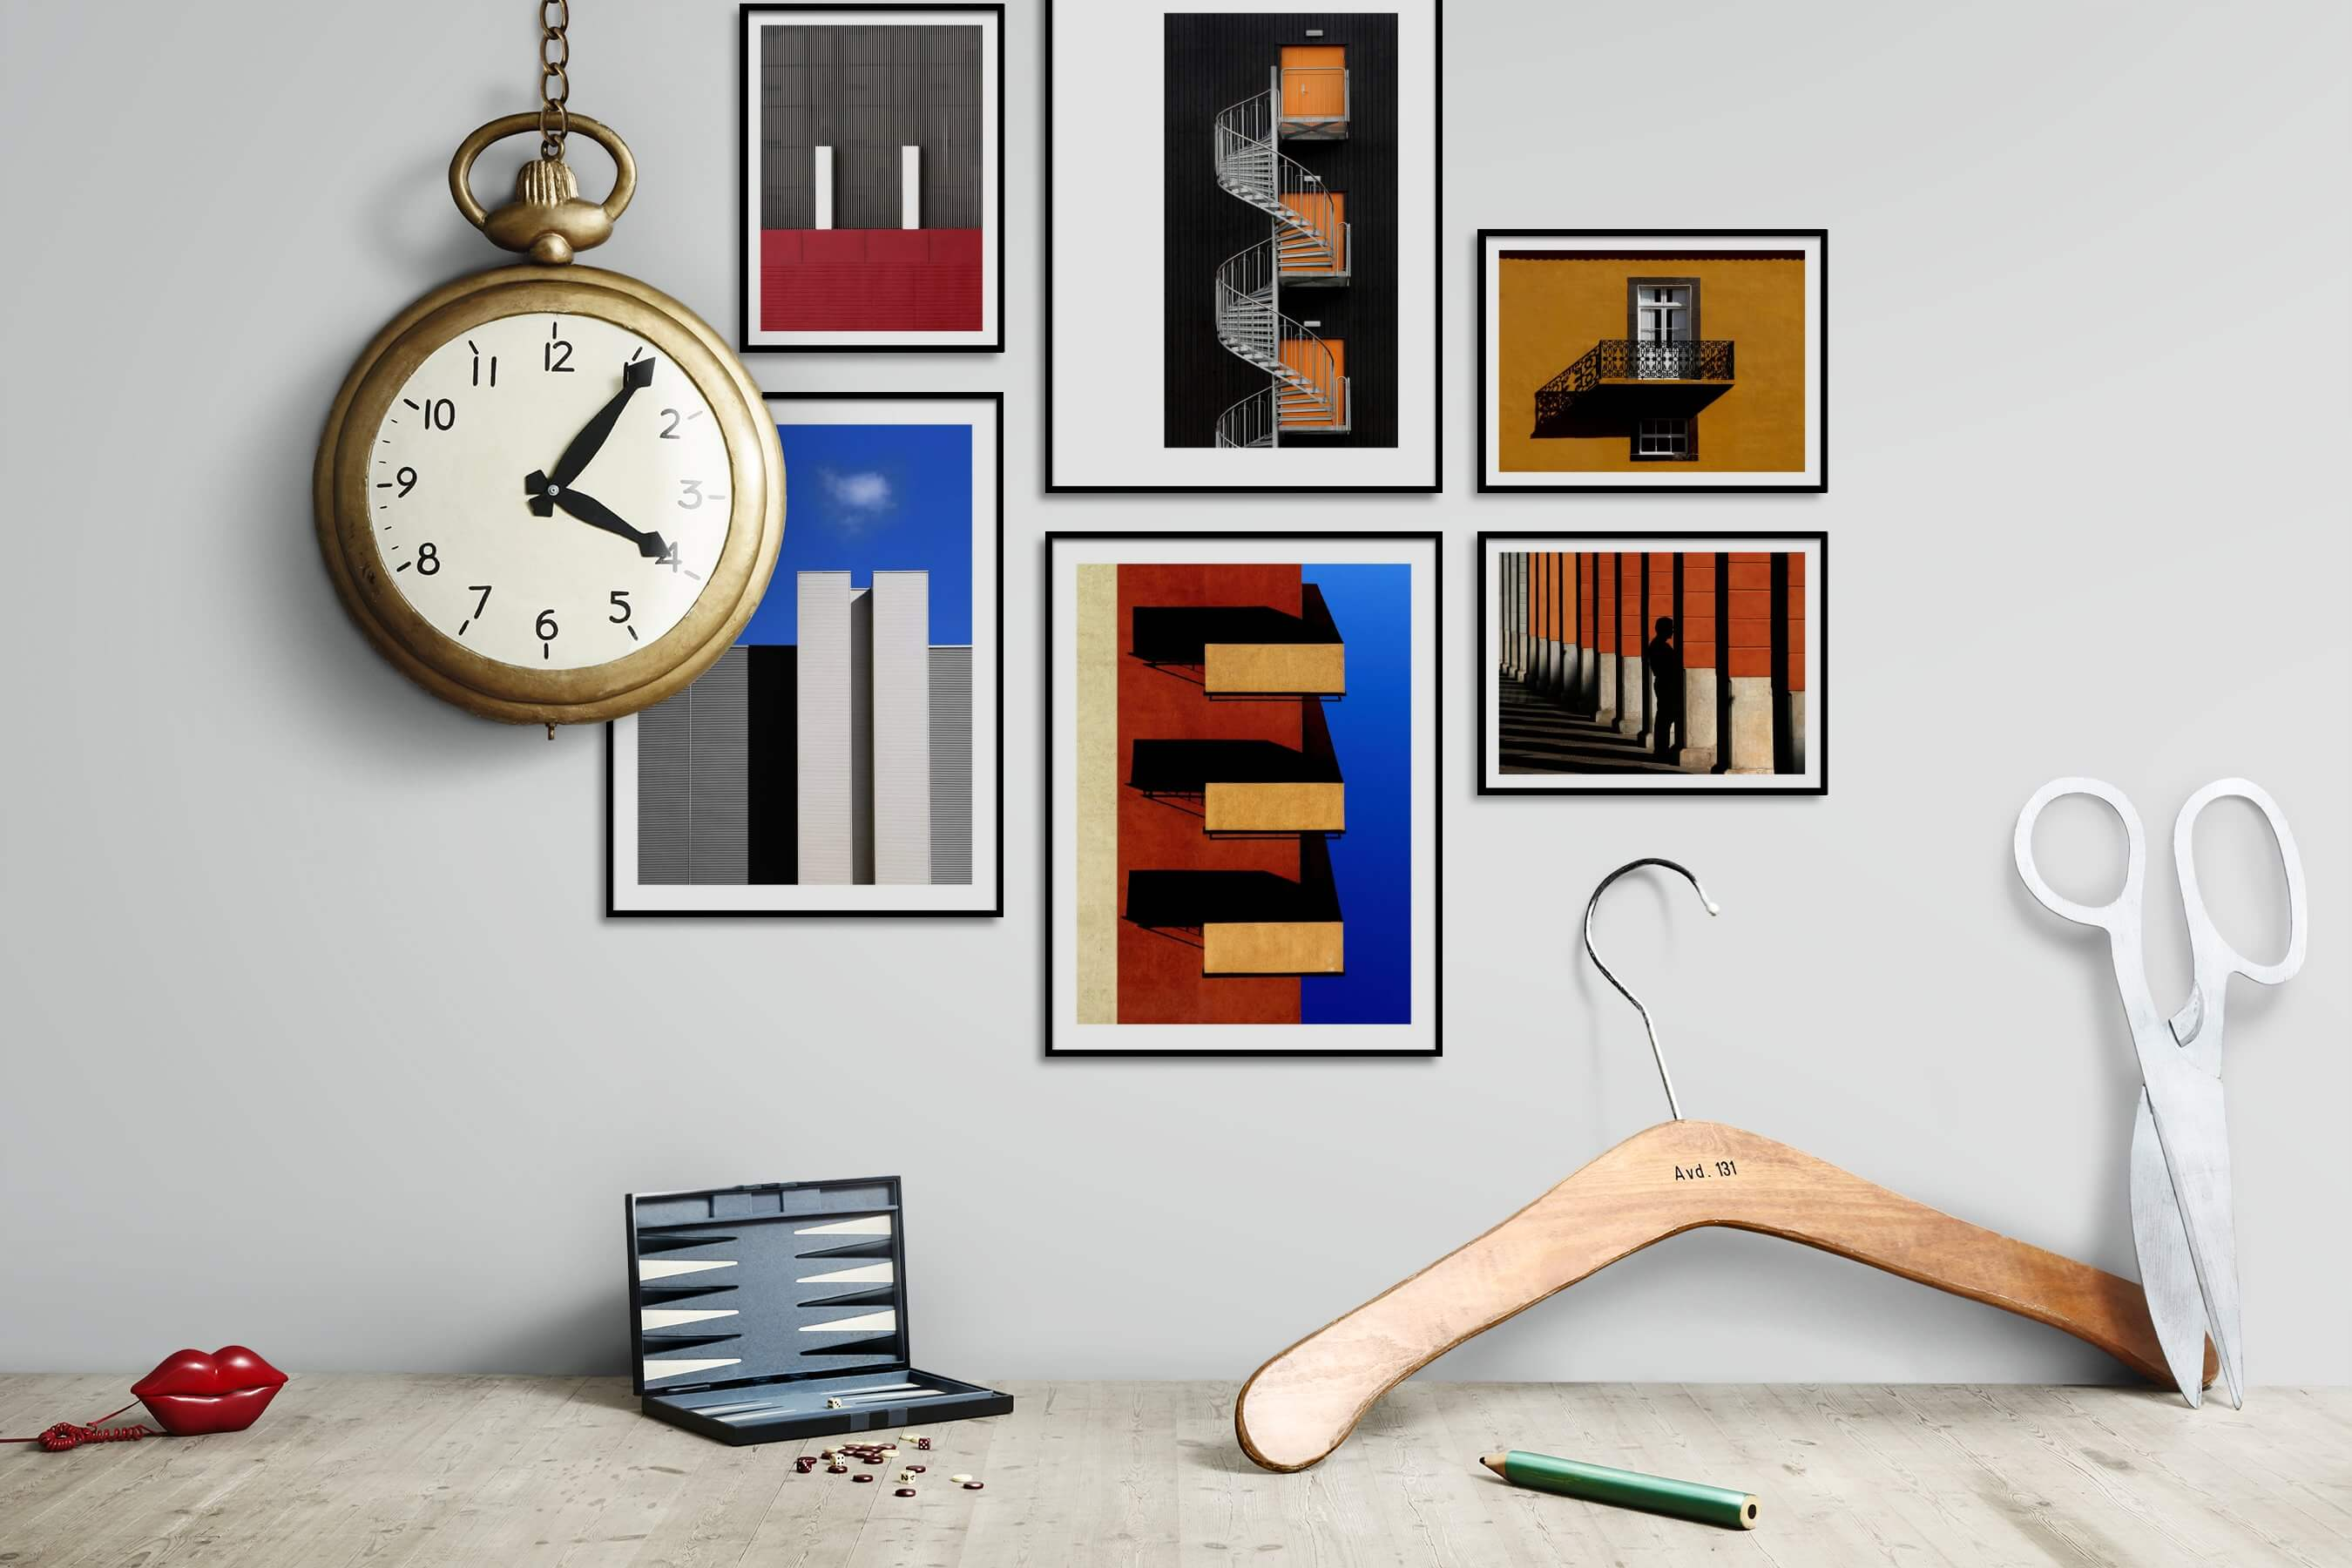 Gallery wall idea with six framed pictures arranged on a wall depicting For the Moderate, City Life, and For the Minimalist